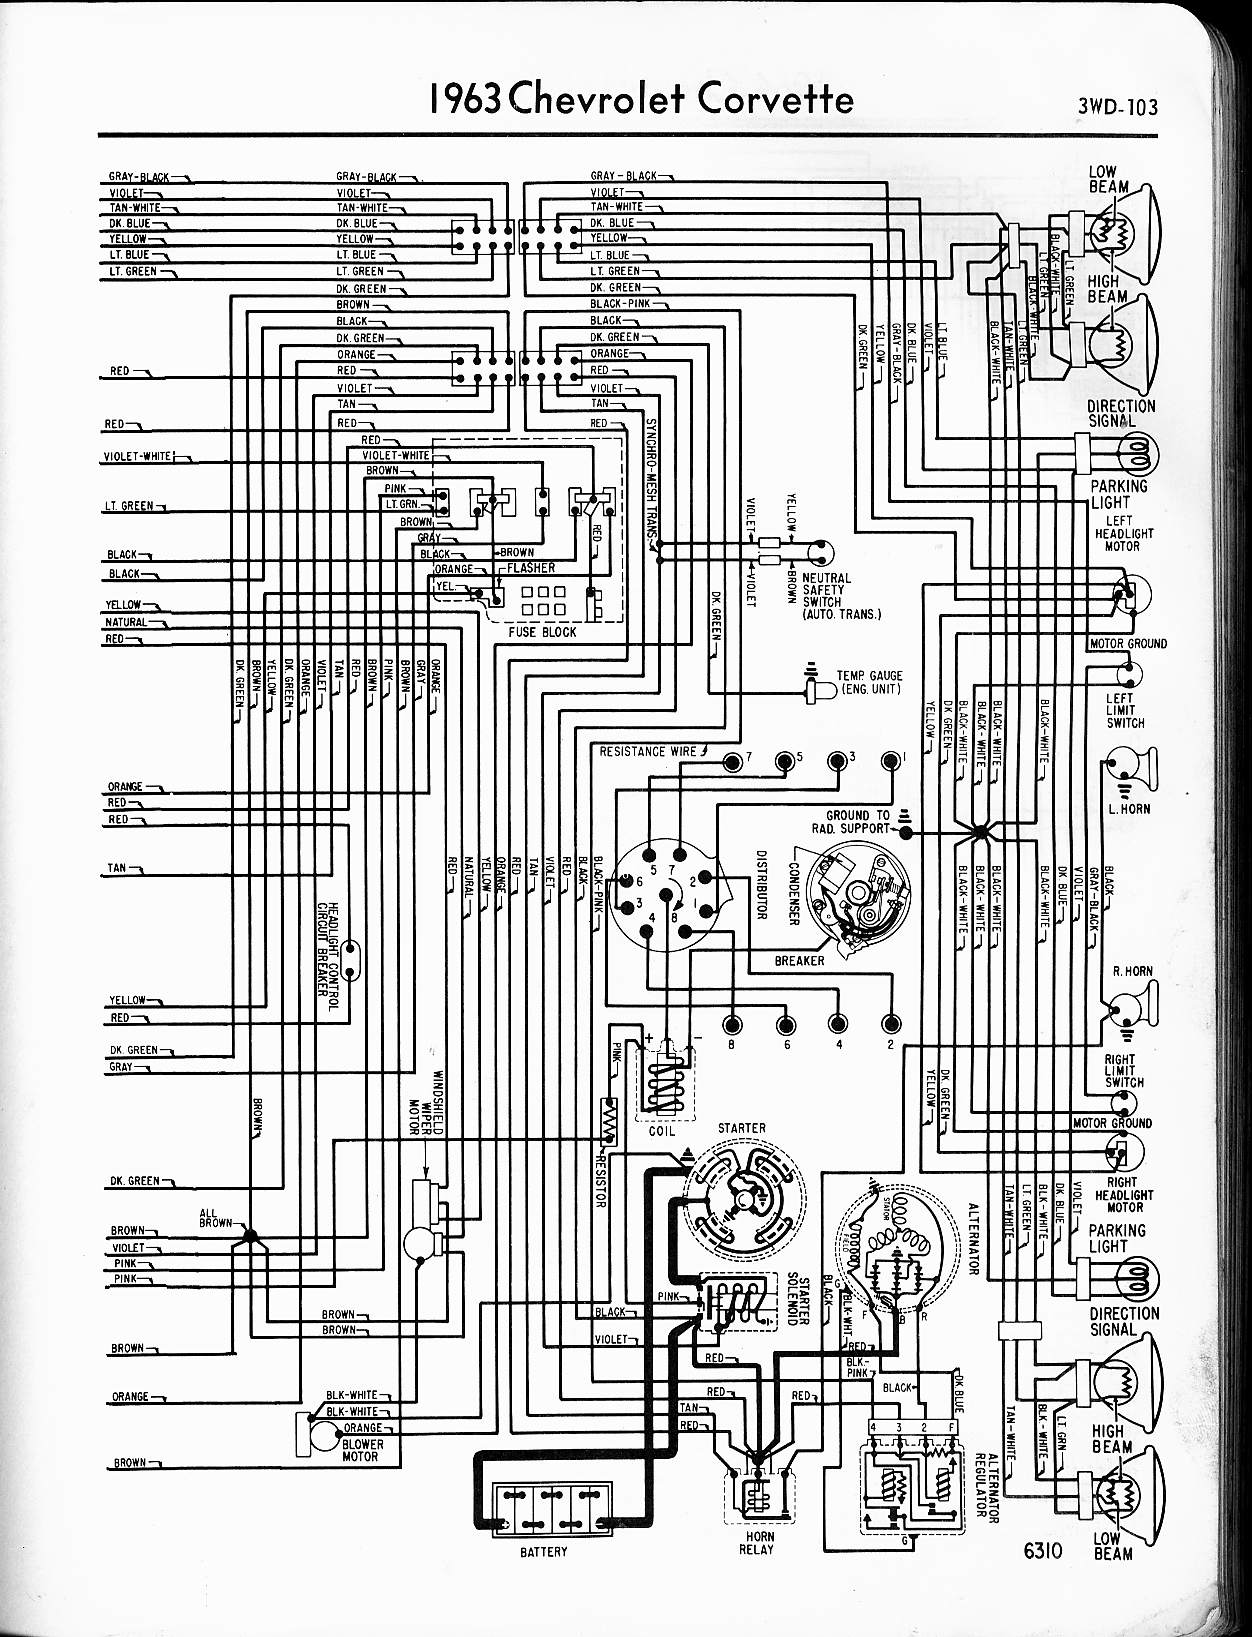 MWireChev63_3WD 103 57 65 chevy wiring diagrams 66 Corvette at aneh.co